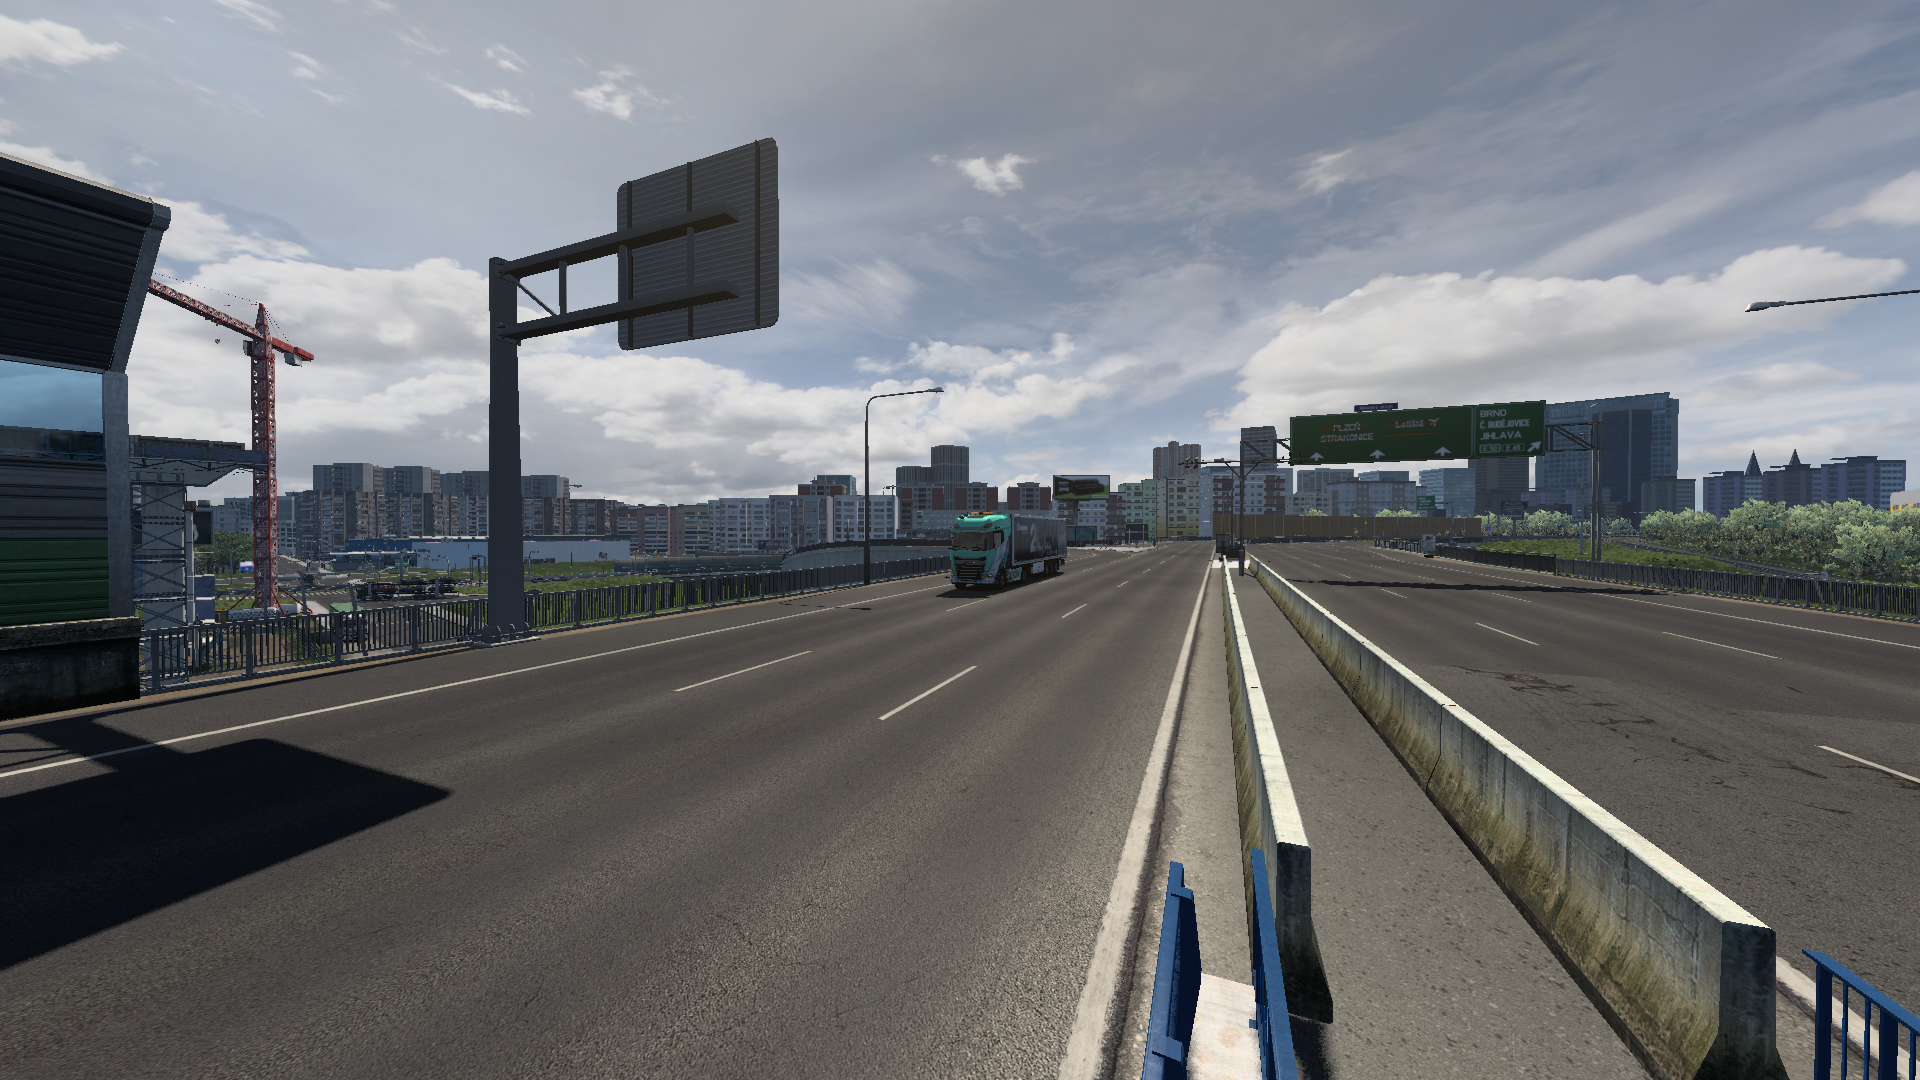 ets2_20210701_124634_00.png